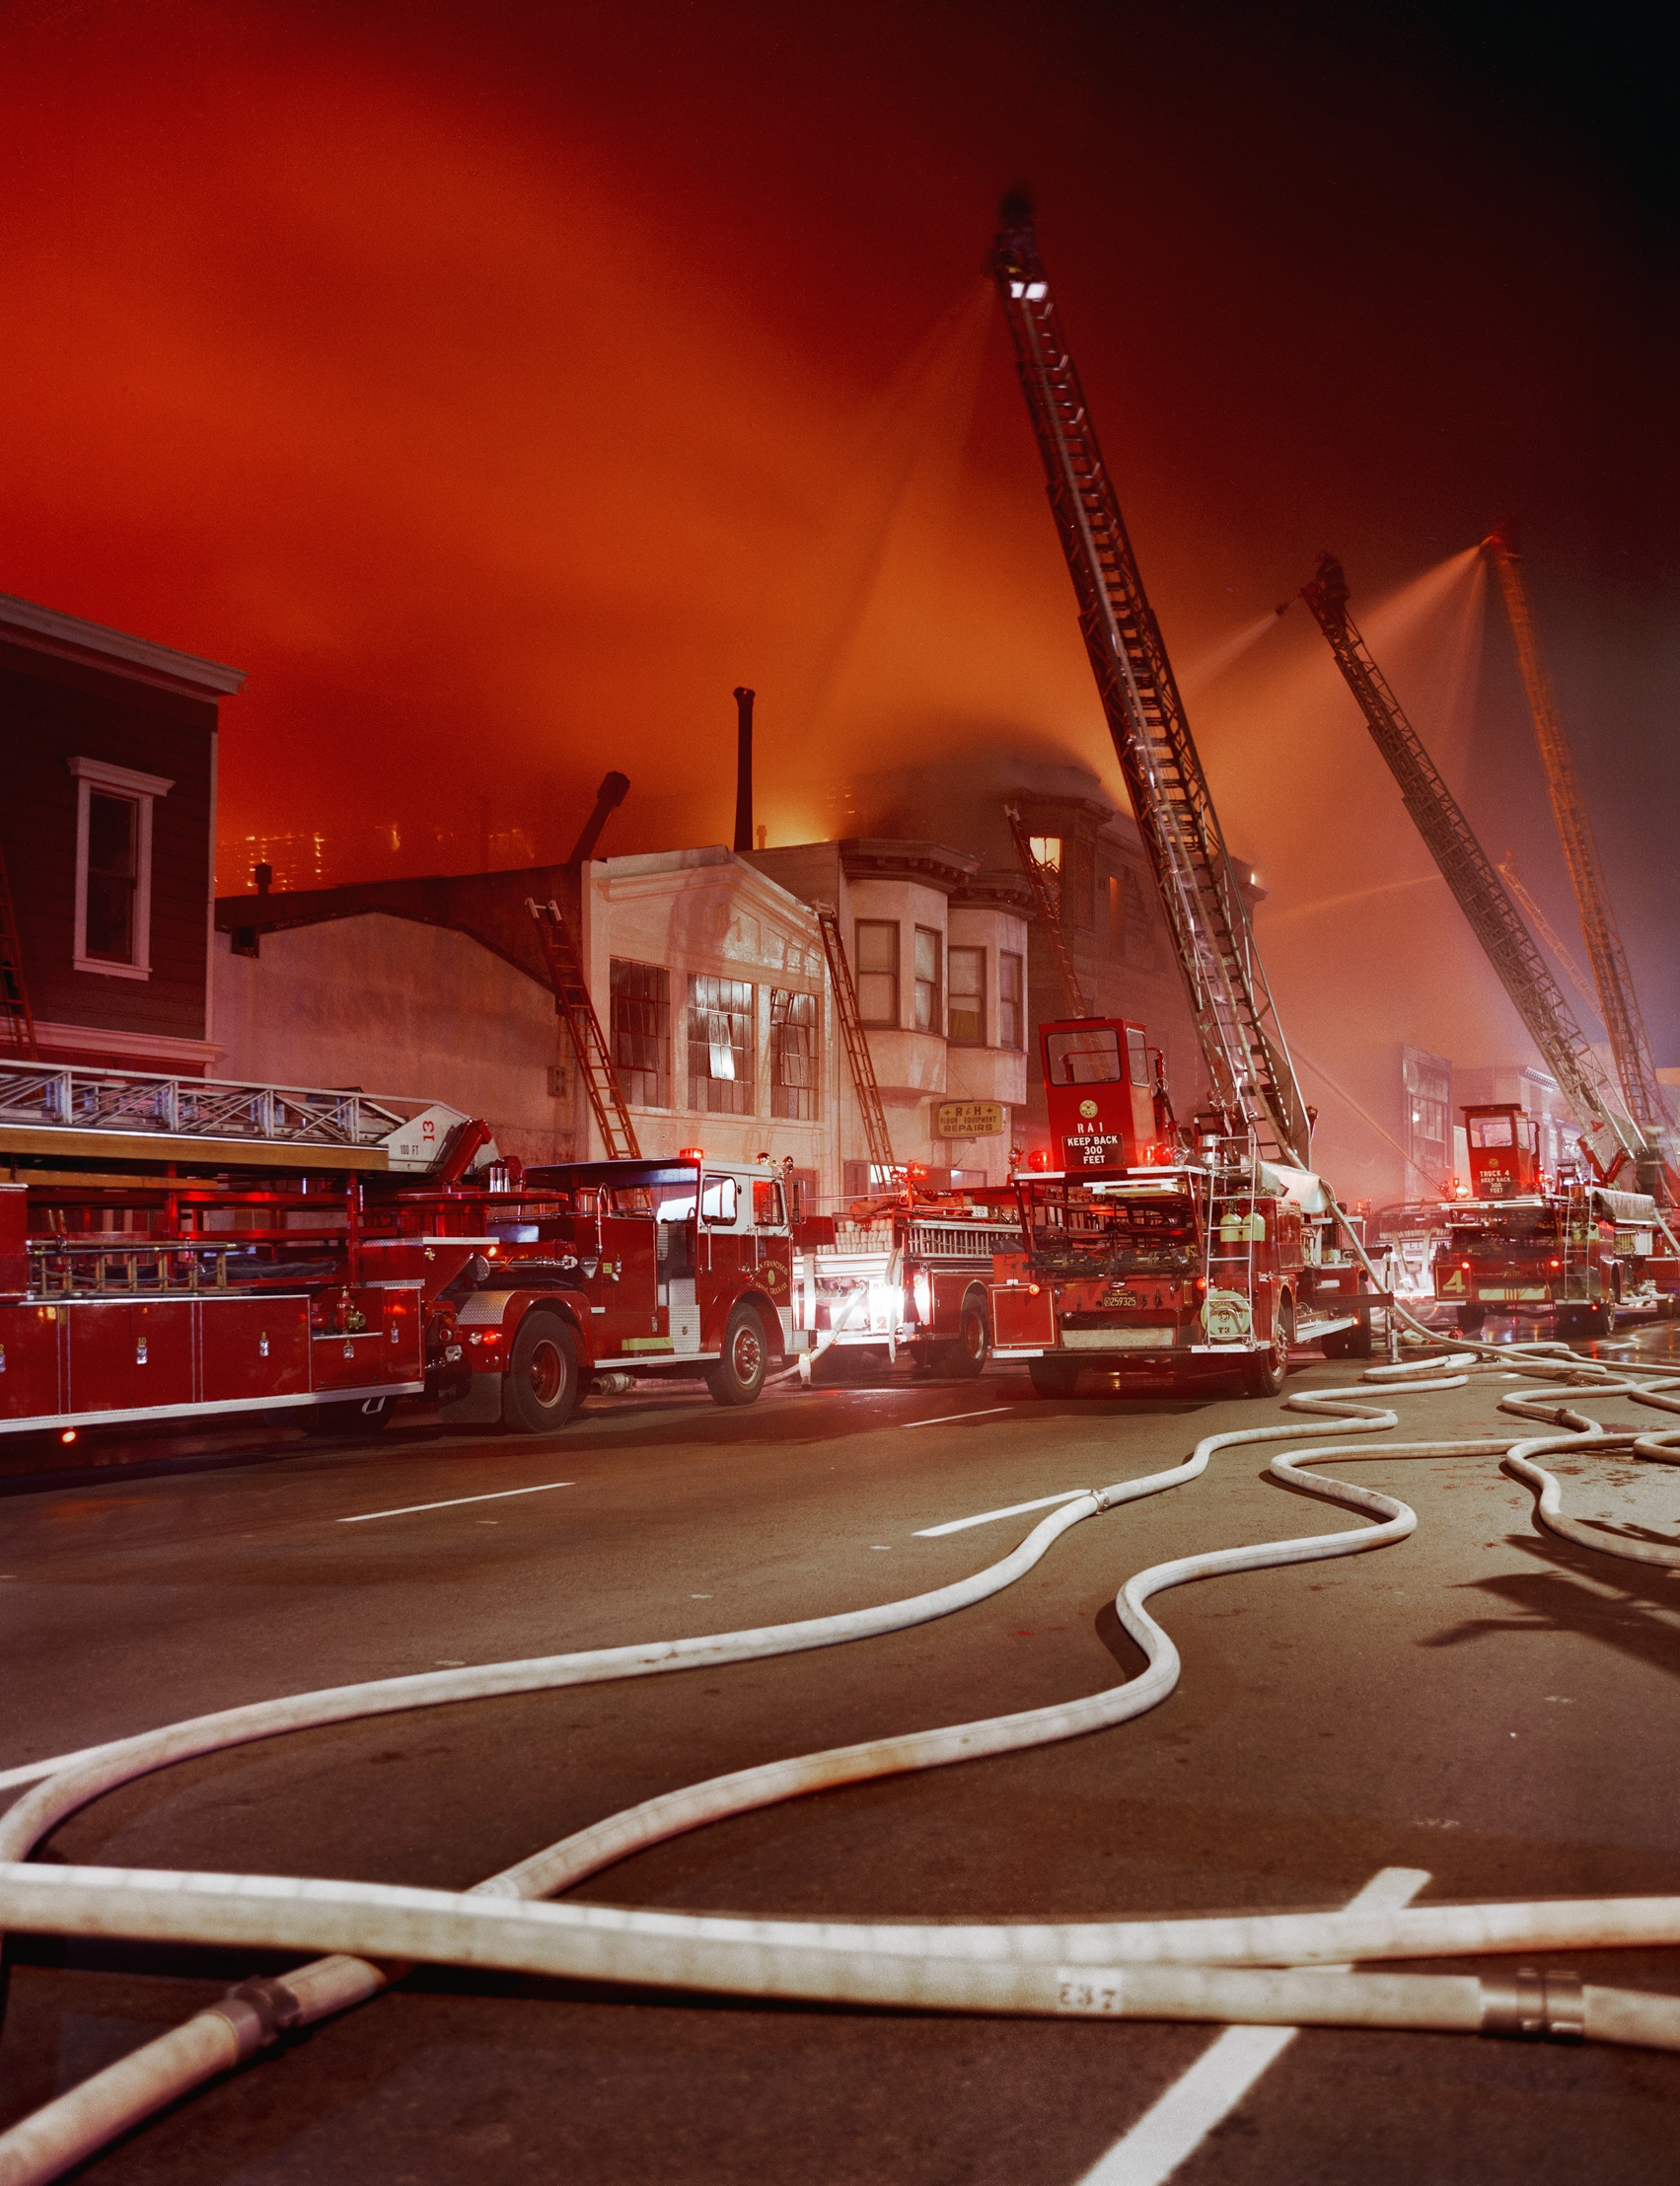 JANET DELANEY Fire Captain Andy Casper being interviewed after the July 10th five-alarm fire on Folsom Street, 1981 Archival Pigment Print, 2016 16 x 20 inches, edition of 5 20 x 24 inches, edition of 2 30 x 40 inches, edition of 2